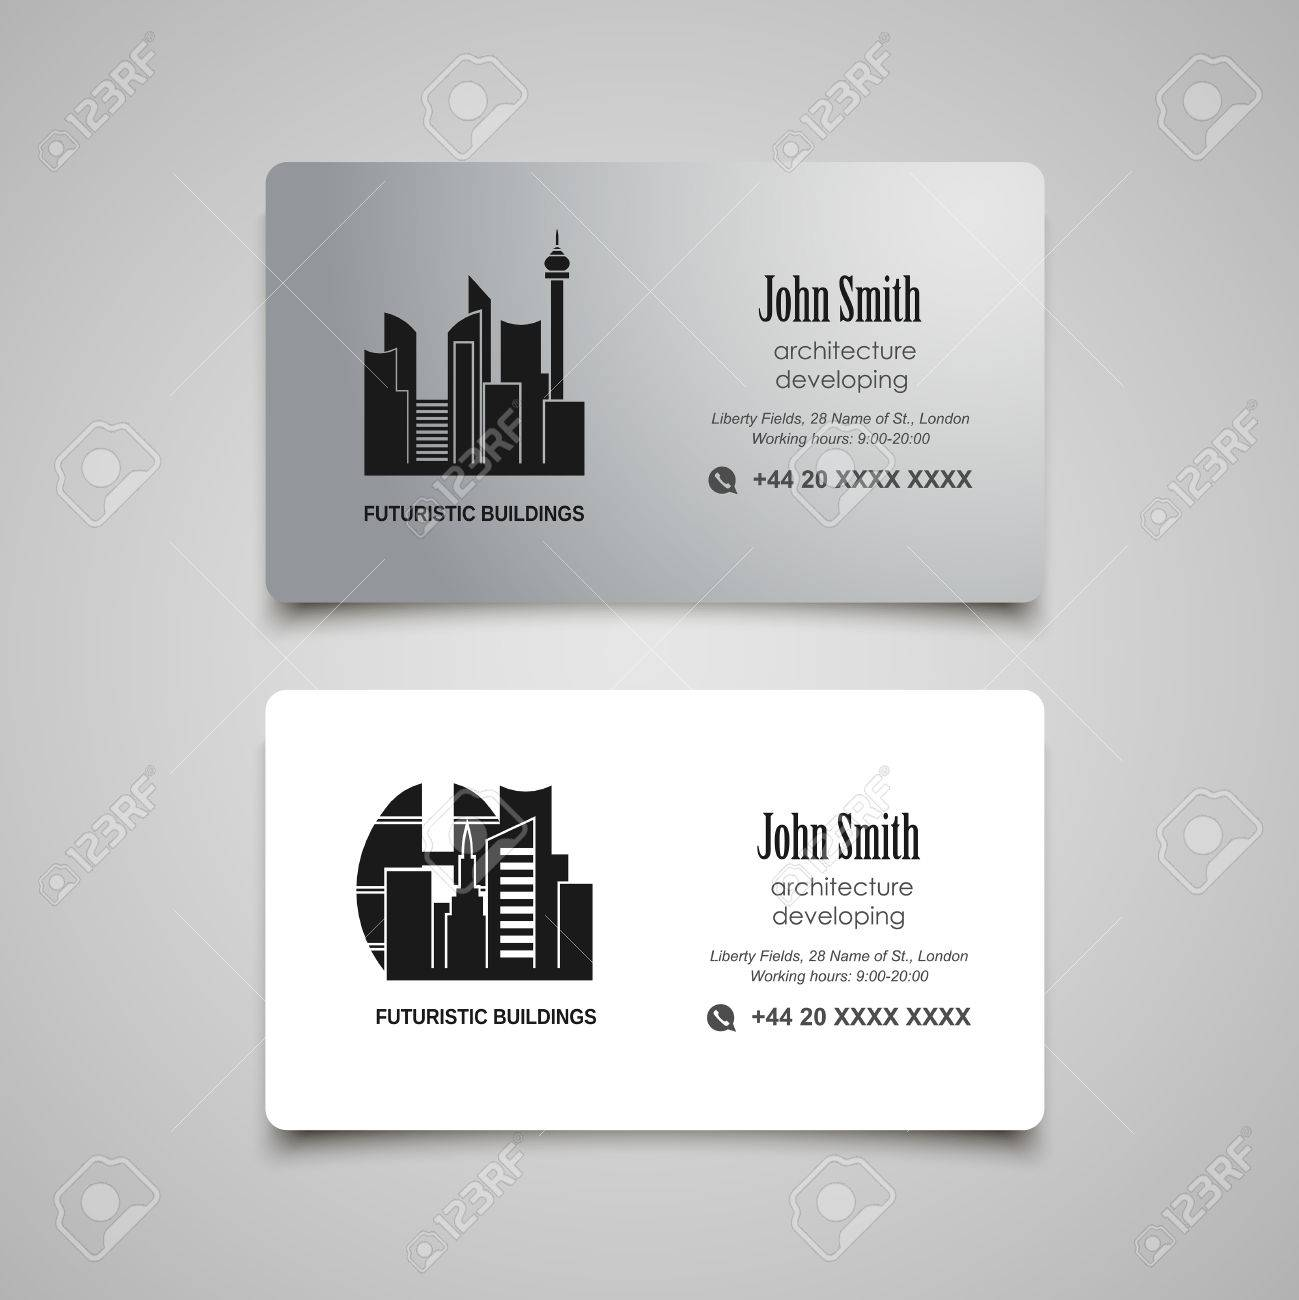 Architecture Developing Or Rent Business Card Template Royalty ...